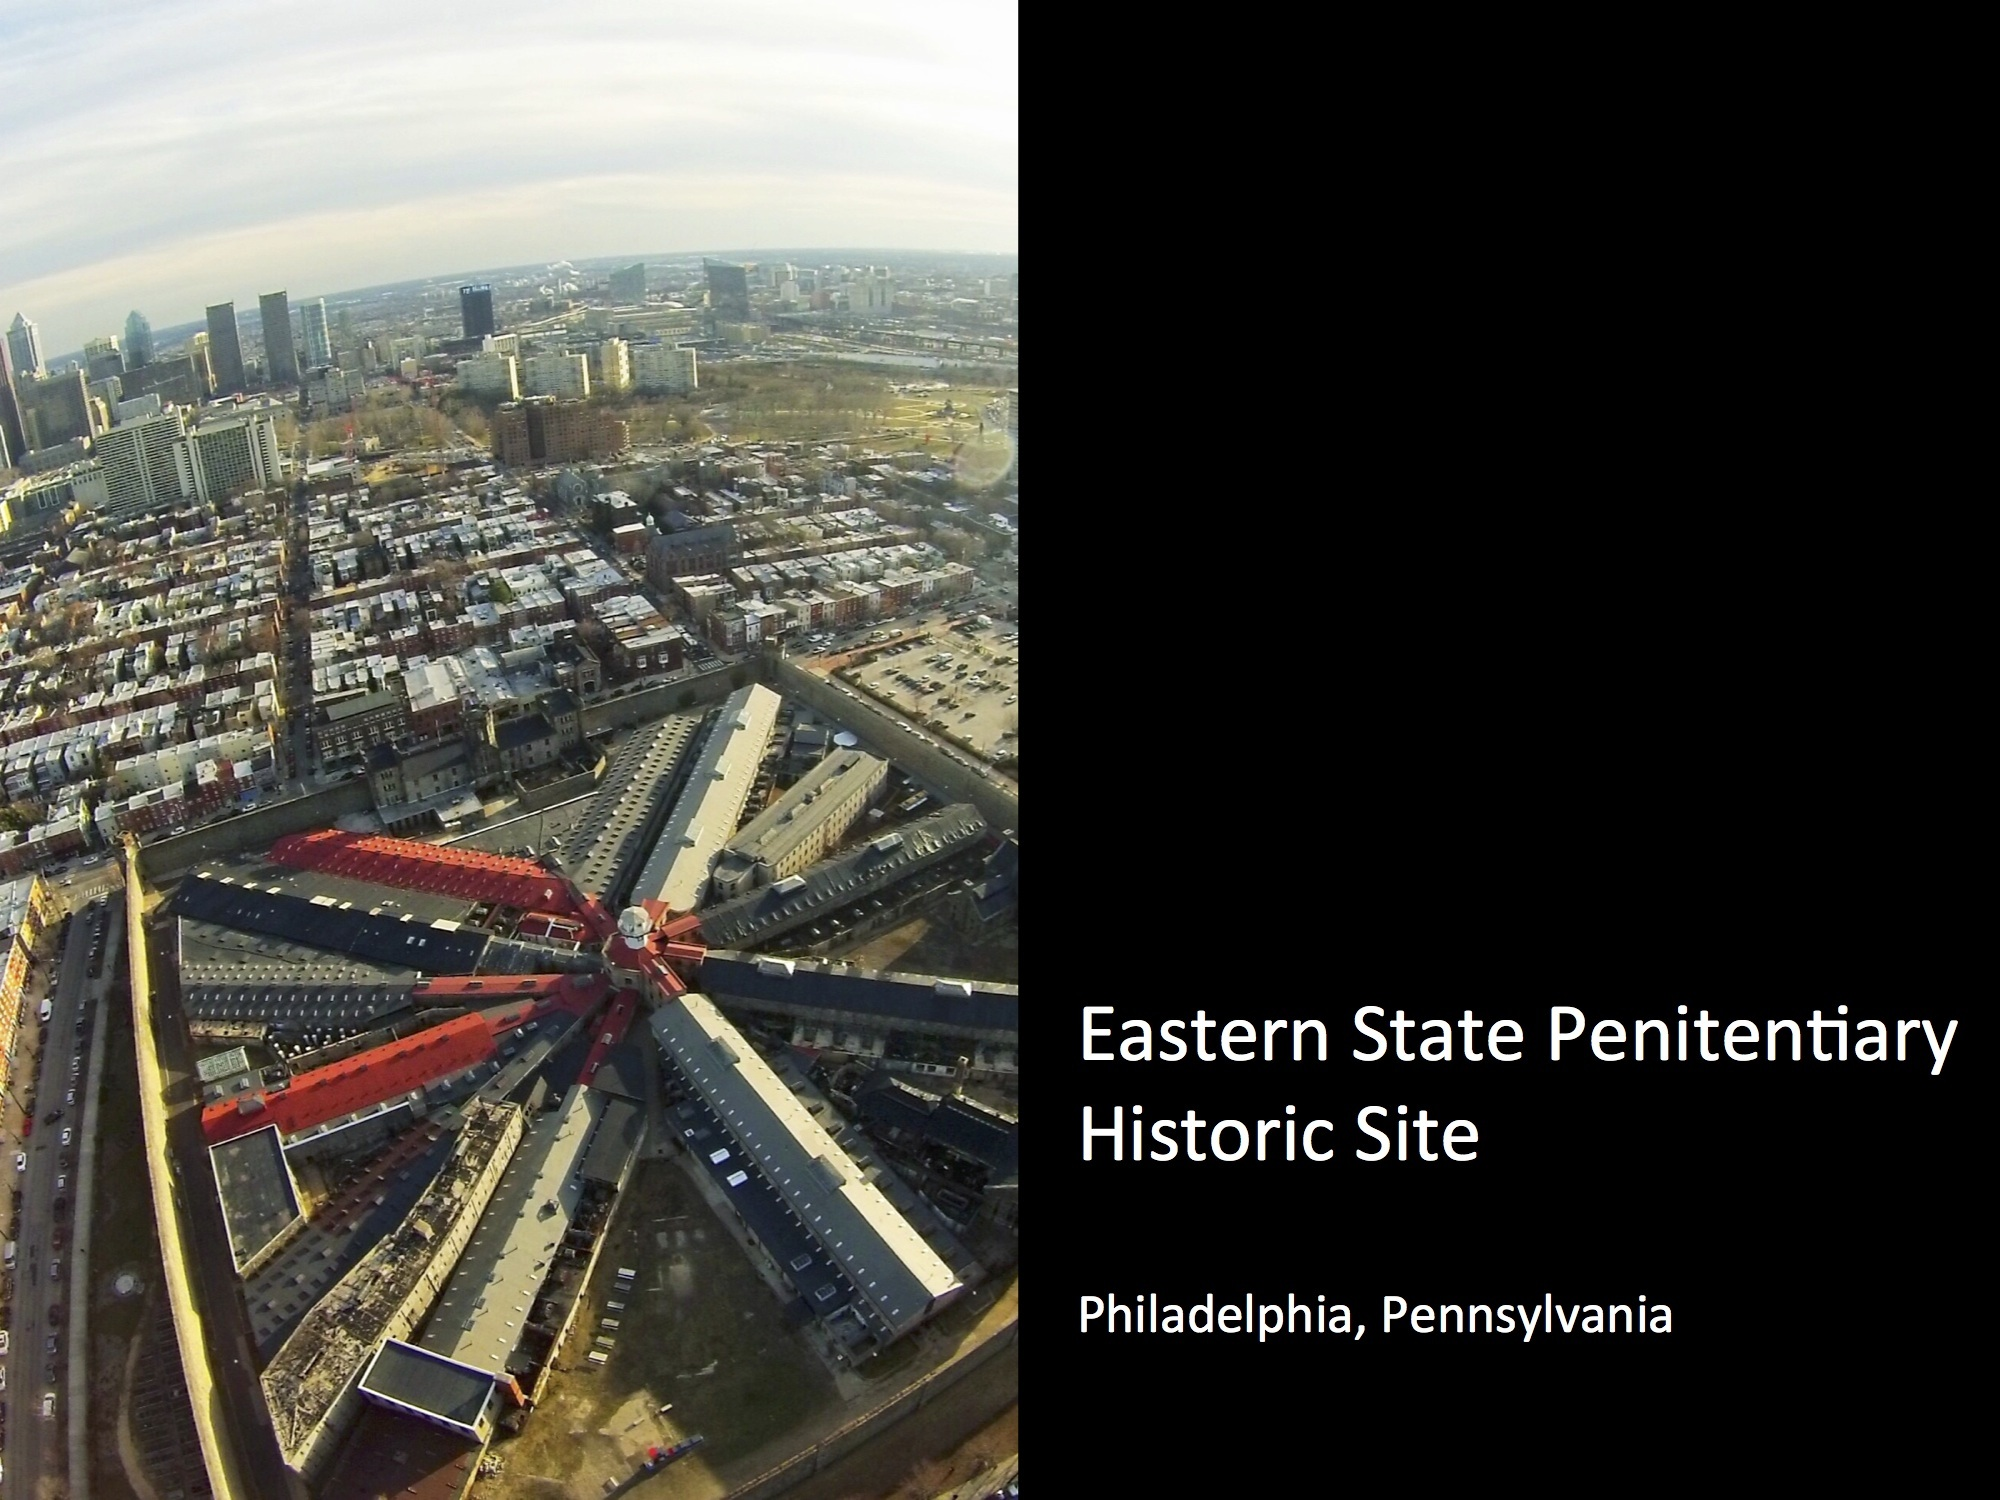 Eastern State Penitentiary Historic Site, Philadelphia